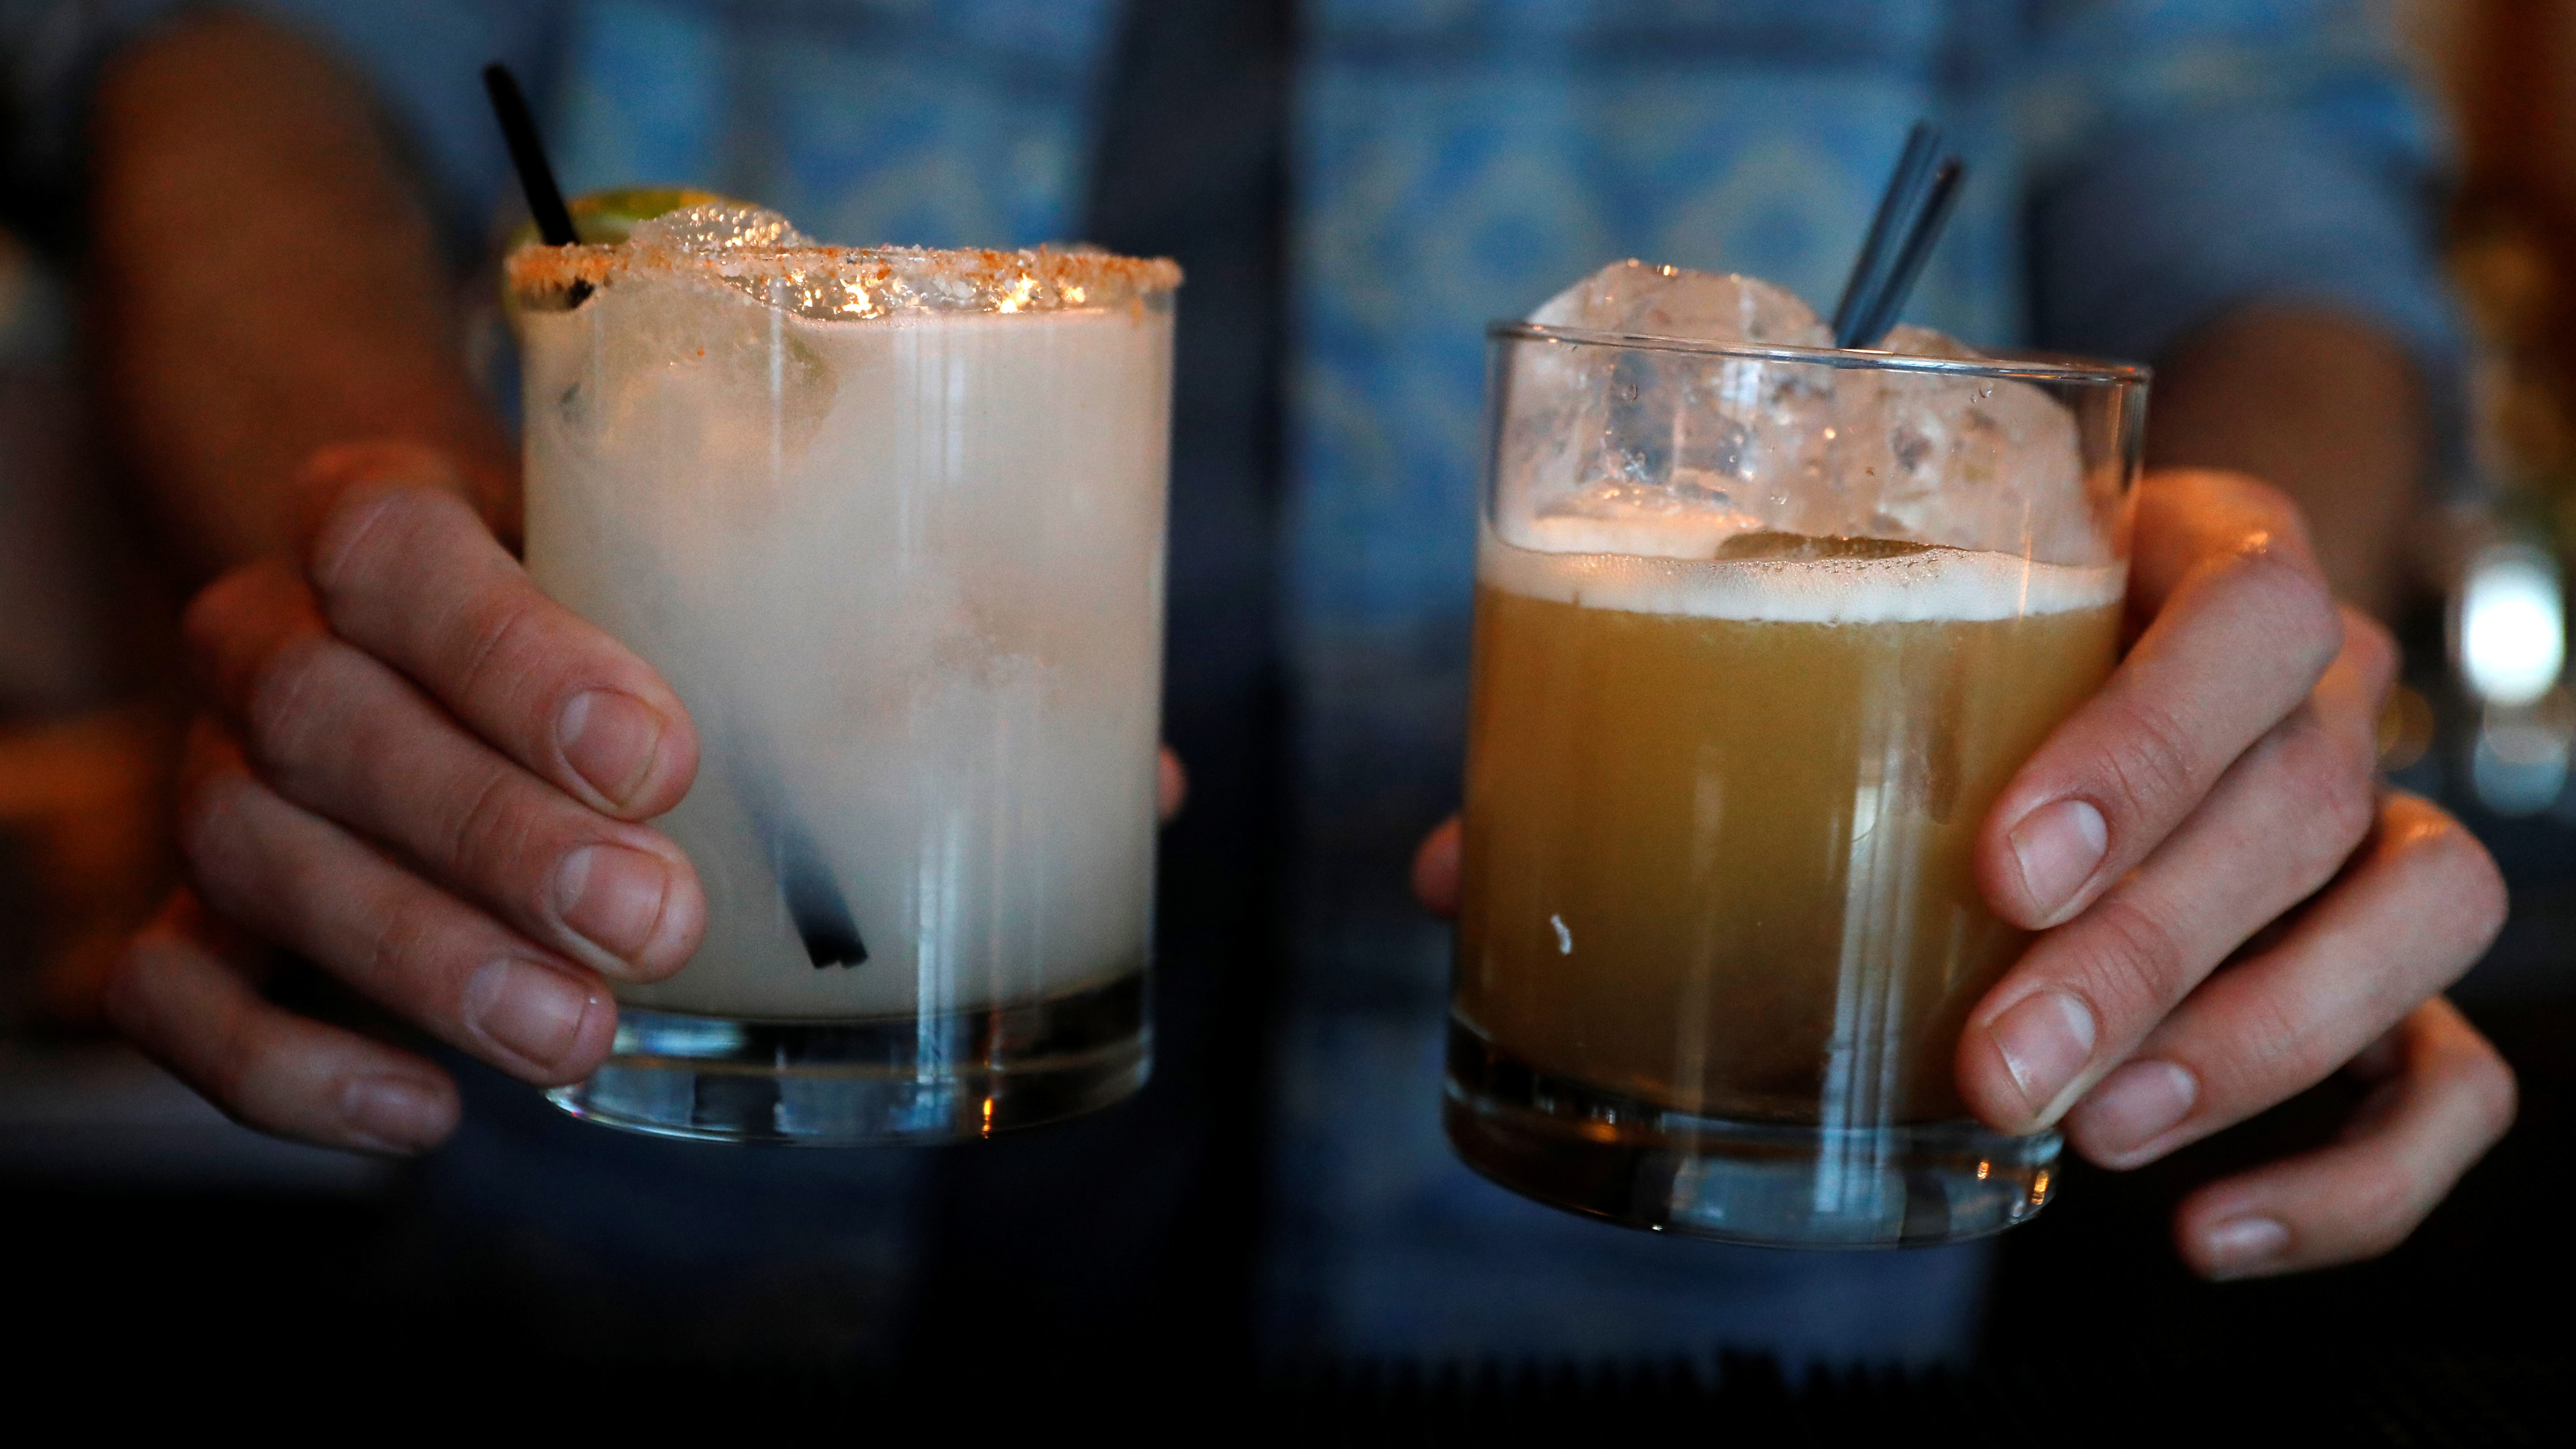 A bartender holds two cocktails, one milky white and the other a light brown.